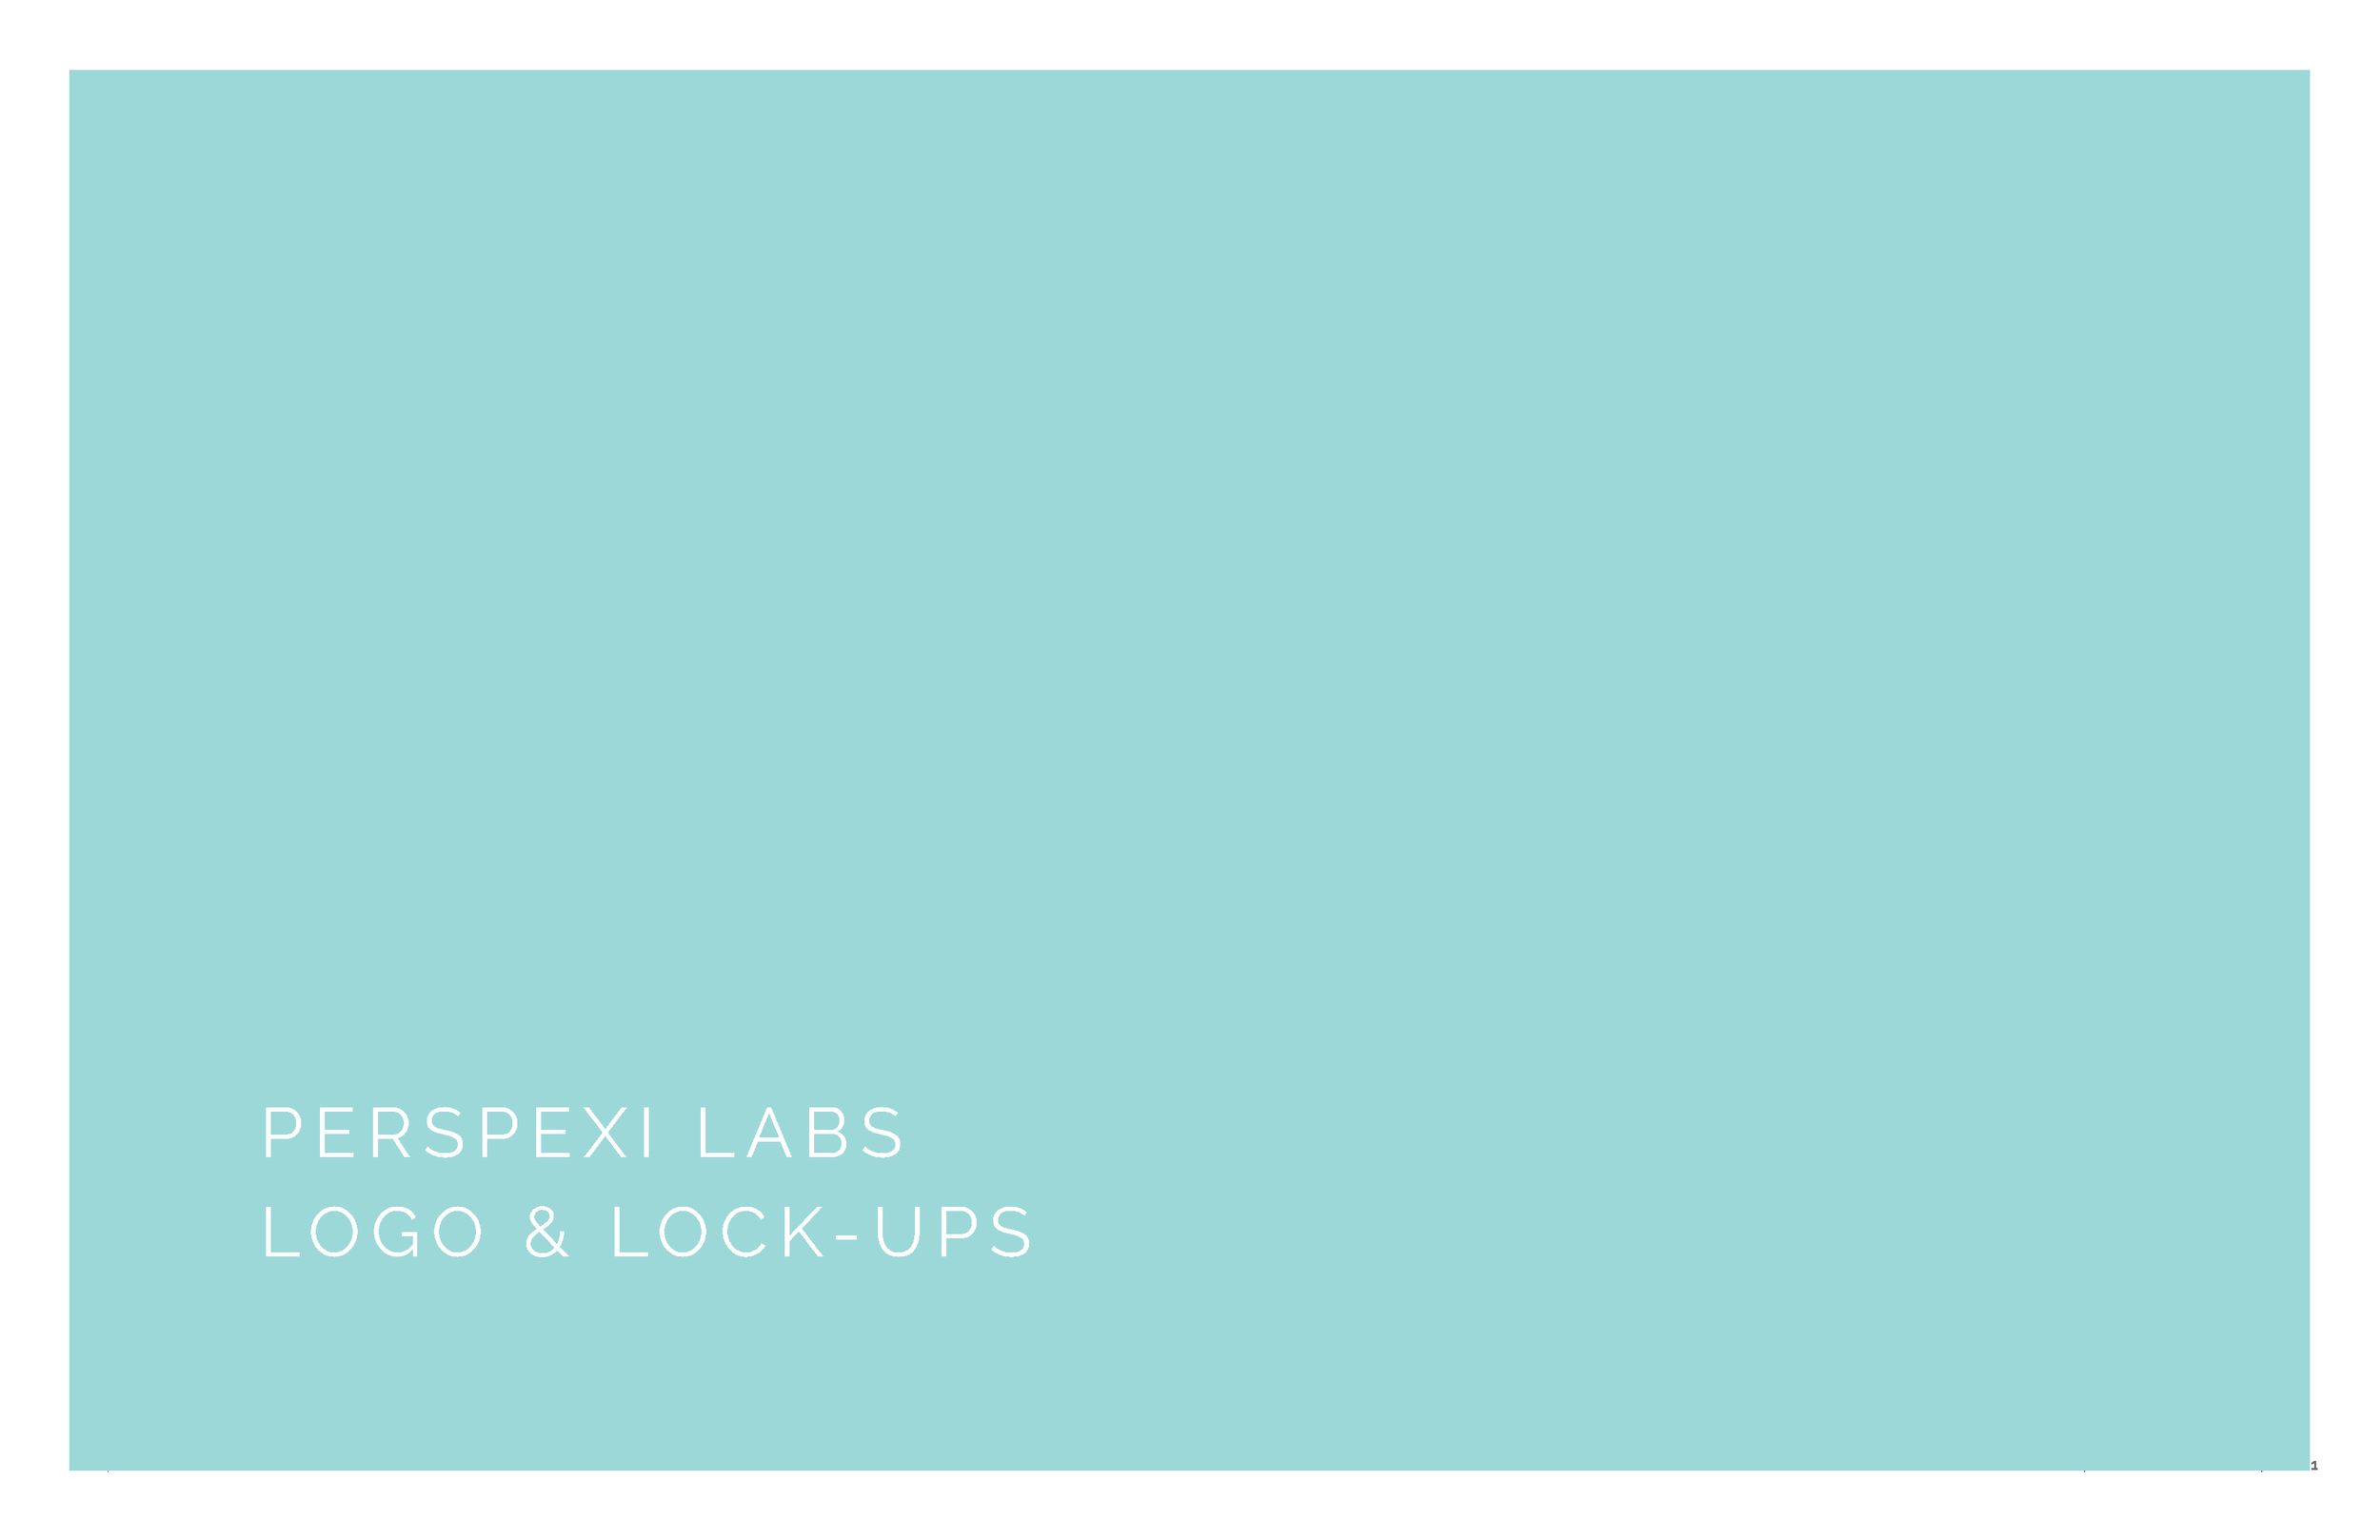 0412_StyleGuide_PerspexiLabs_Page_02.png